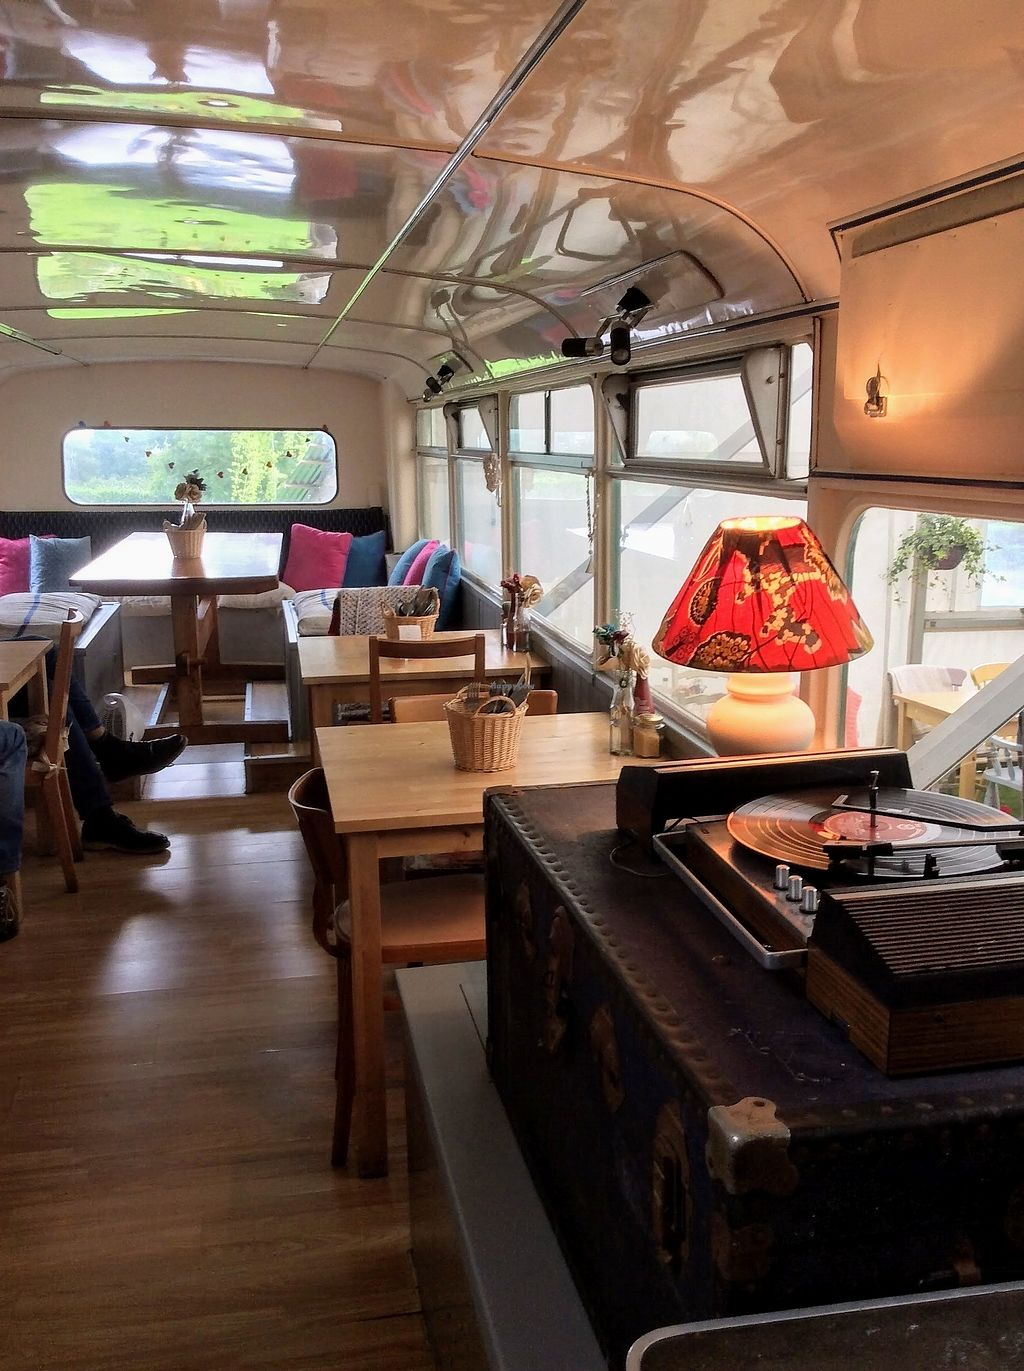 """Photo of The Railway Carriage Cafe  by <a href=""""/members/profile/The%20Smiths"""">The Smiths</a> <br/>Downstairs in the bus <br/> September 9, 2017  - <a href='/contact/abuse/image/91766/302646'>Report</a>"""